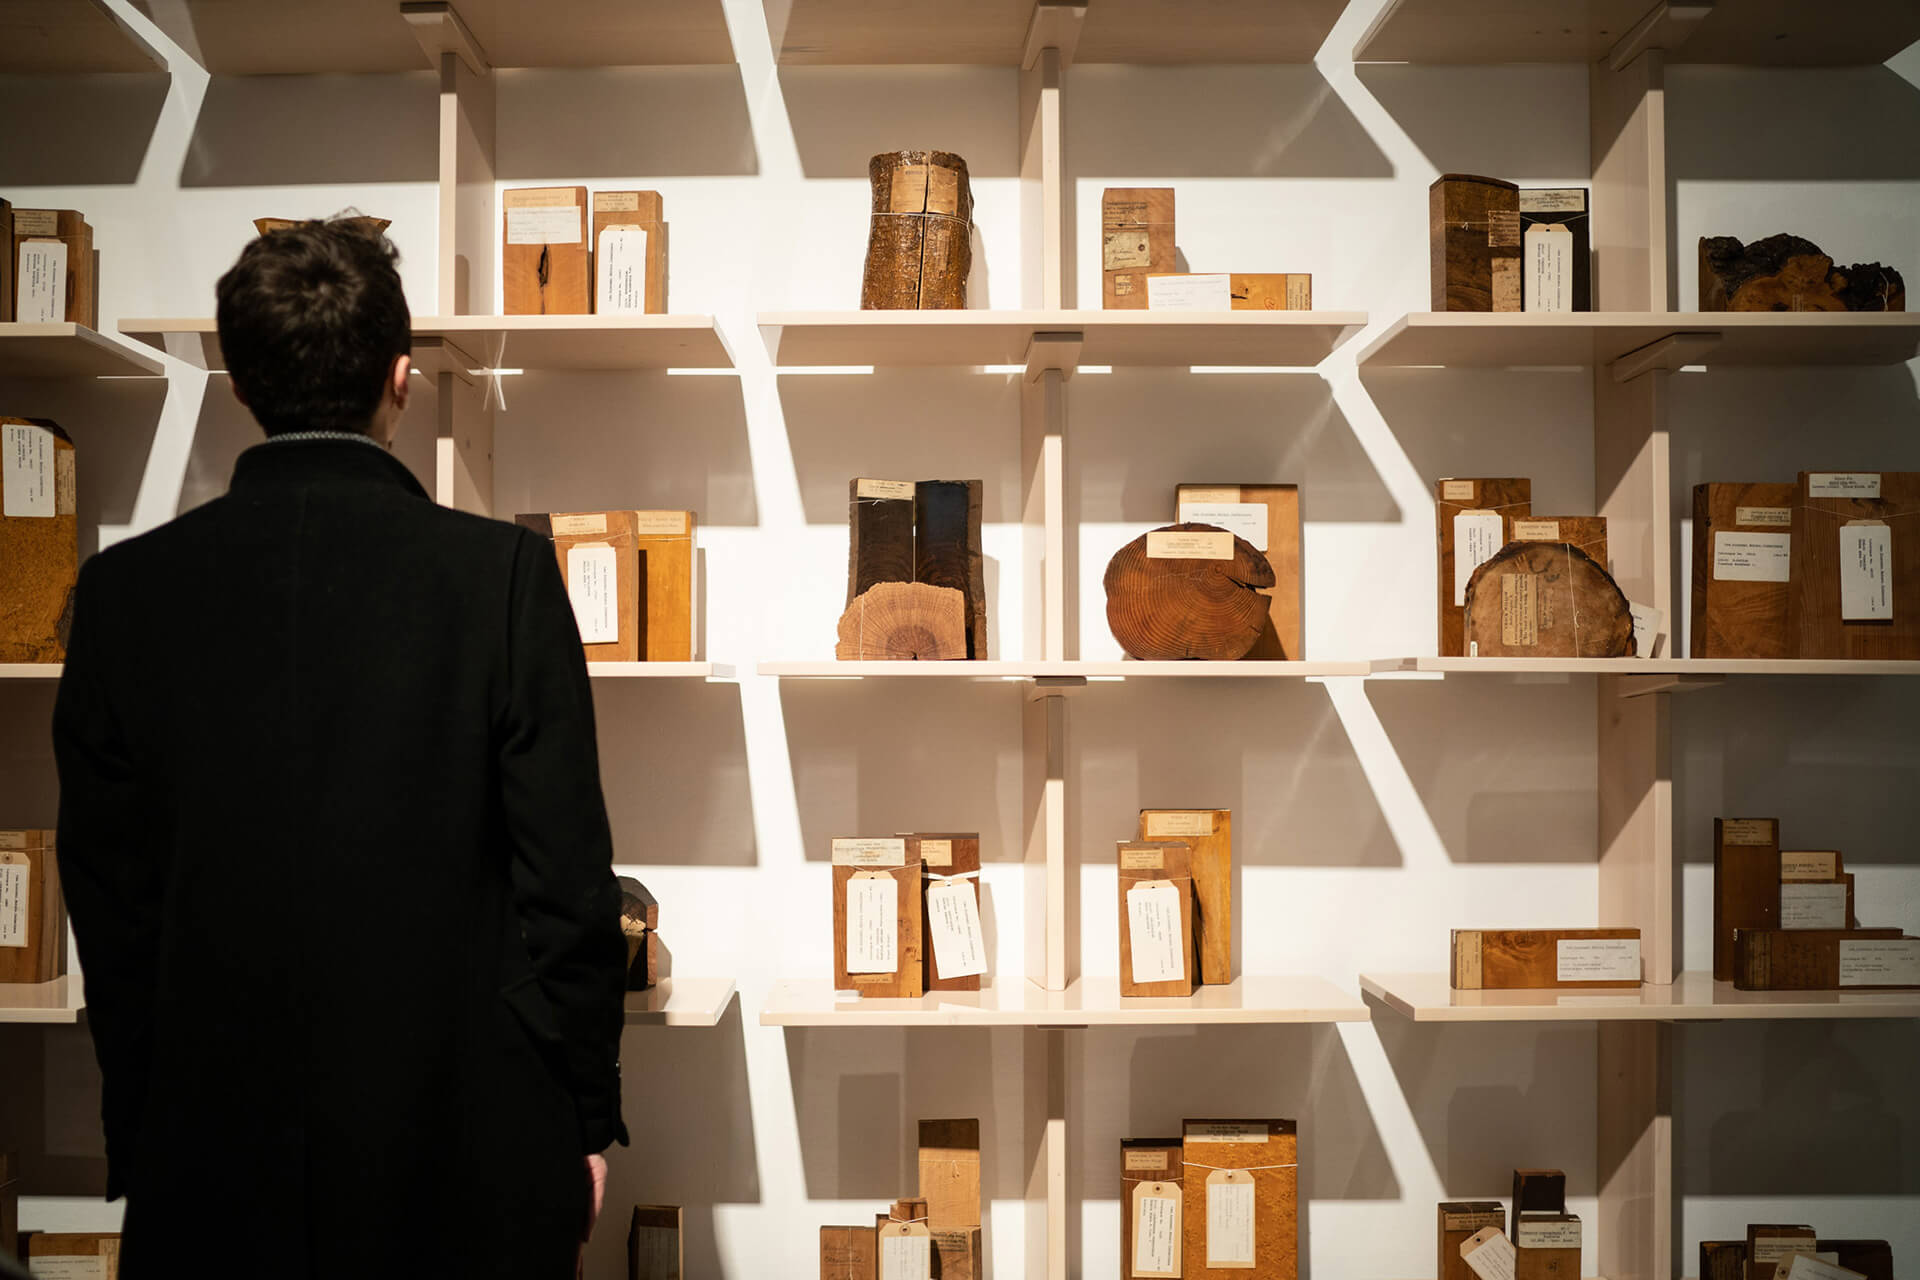 Cambio by Formafantasma | Cambio by Formafantasma at the Serpentine Gallery | STIRworld